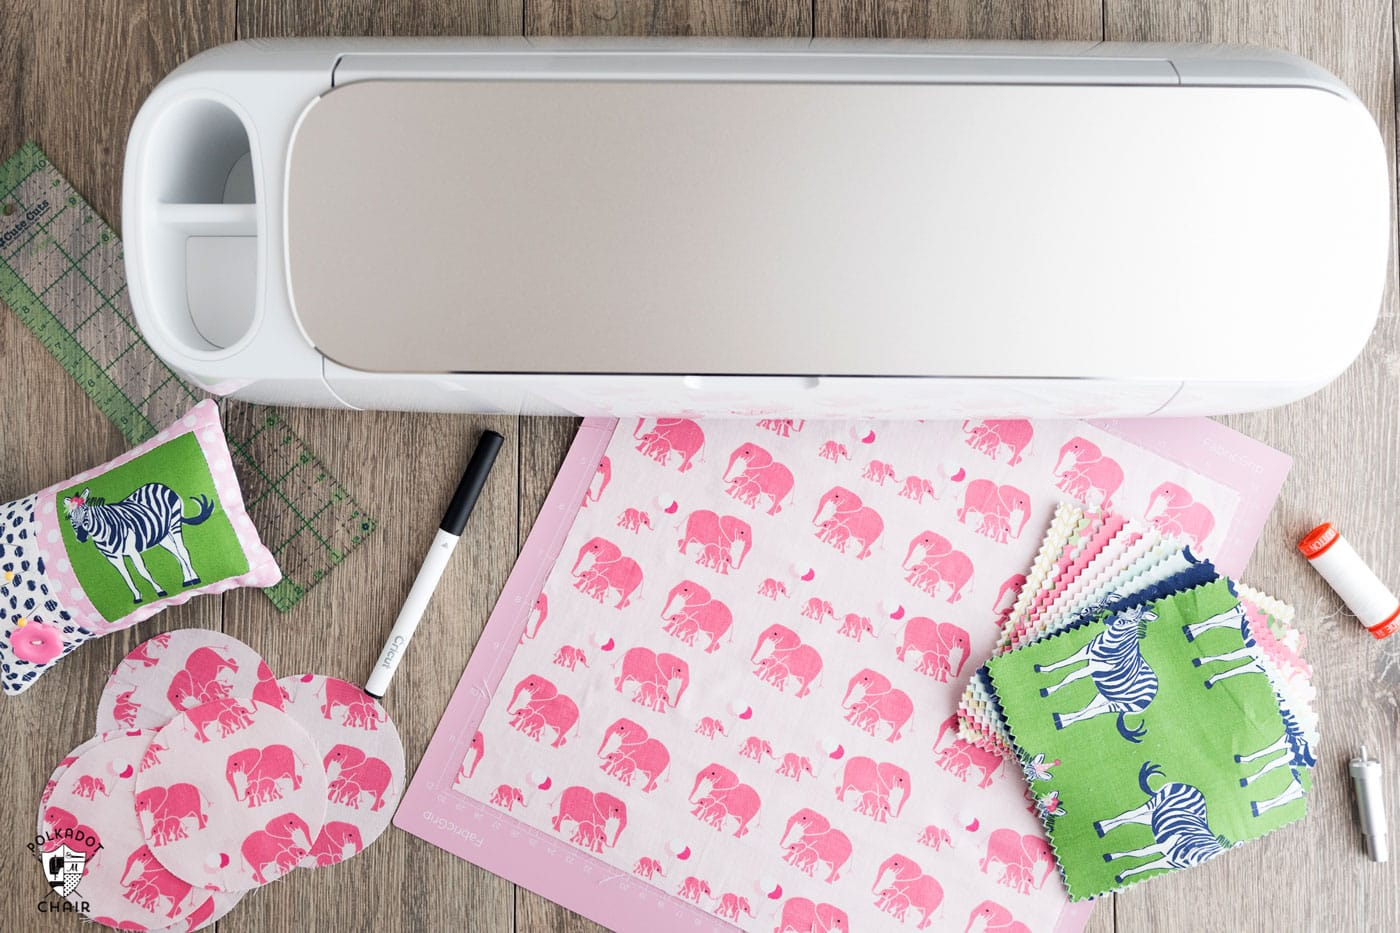 Review of the new Cricut Maker Machine and answers to some of your frequently asked questions about the new cricut machine